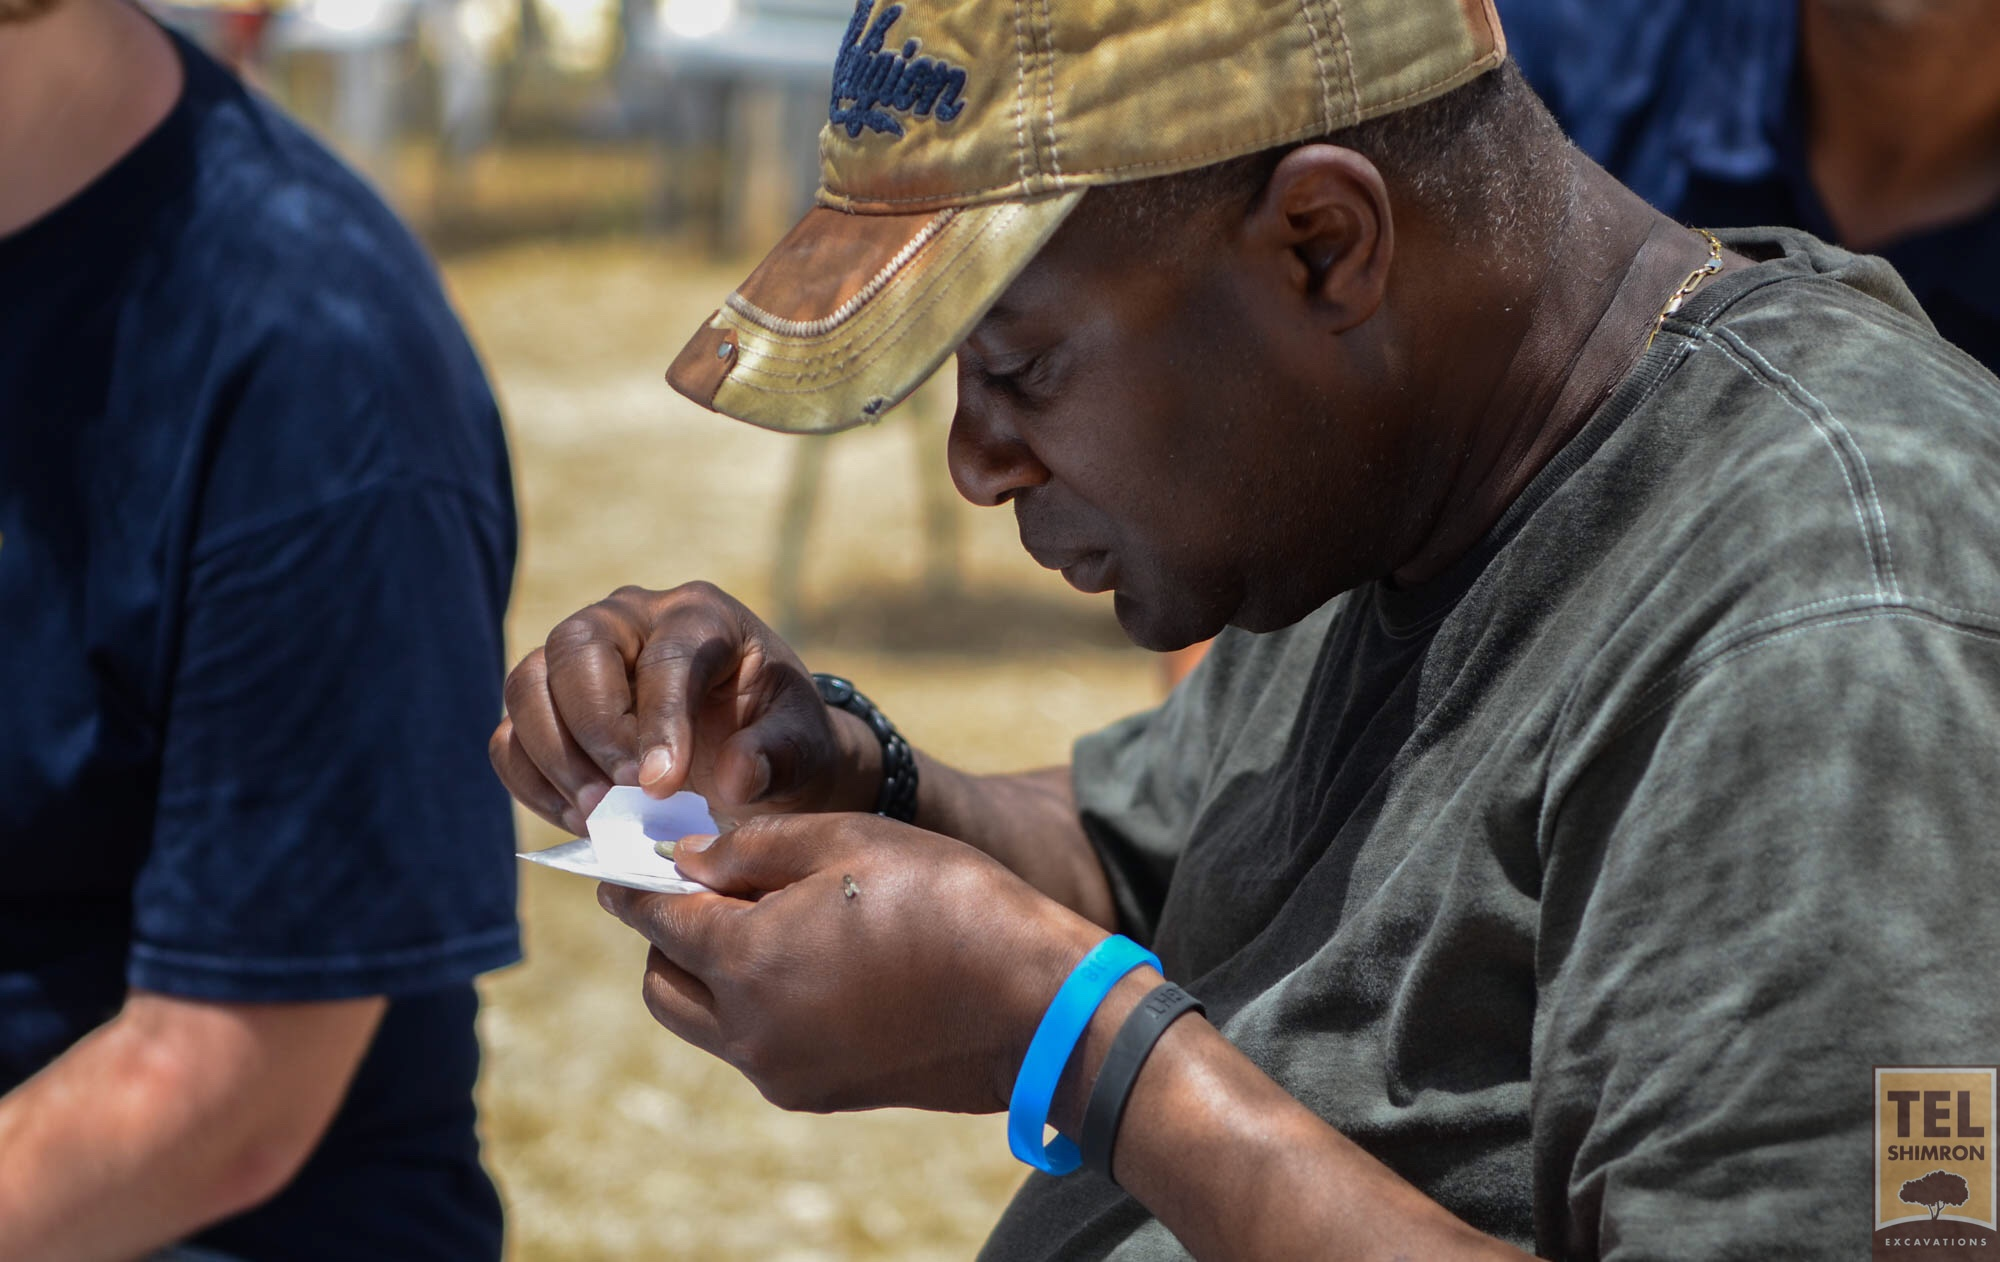 Examining a coin found during excavation